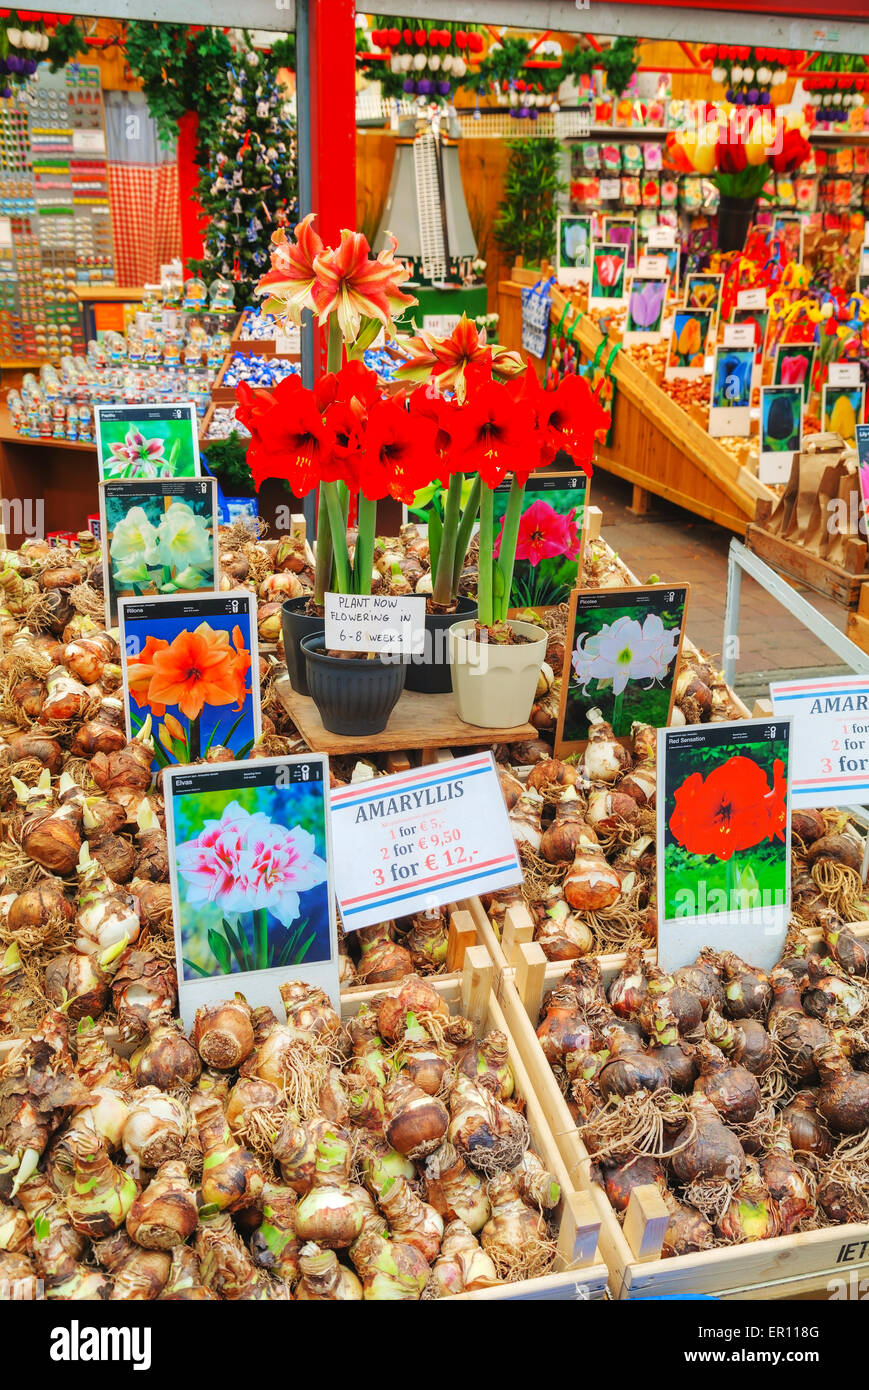 AMSTERDAM - APRIL 17: Boxes with bulbs at the Floating flower market  on April 17, 2015 in Amsterdam, Netherlands. Stock Photo